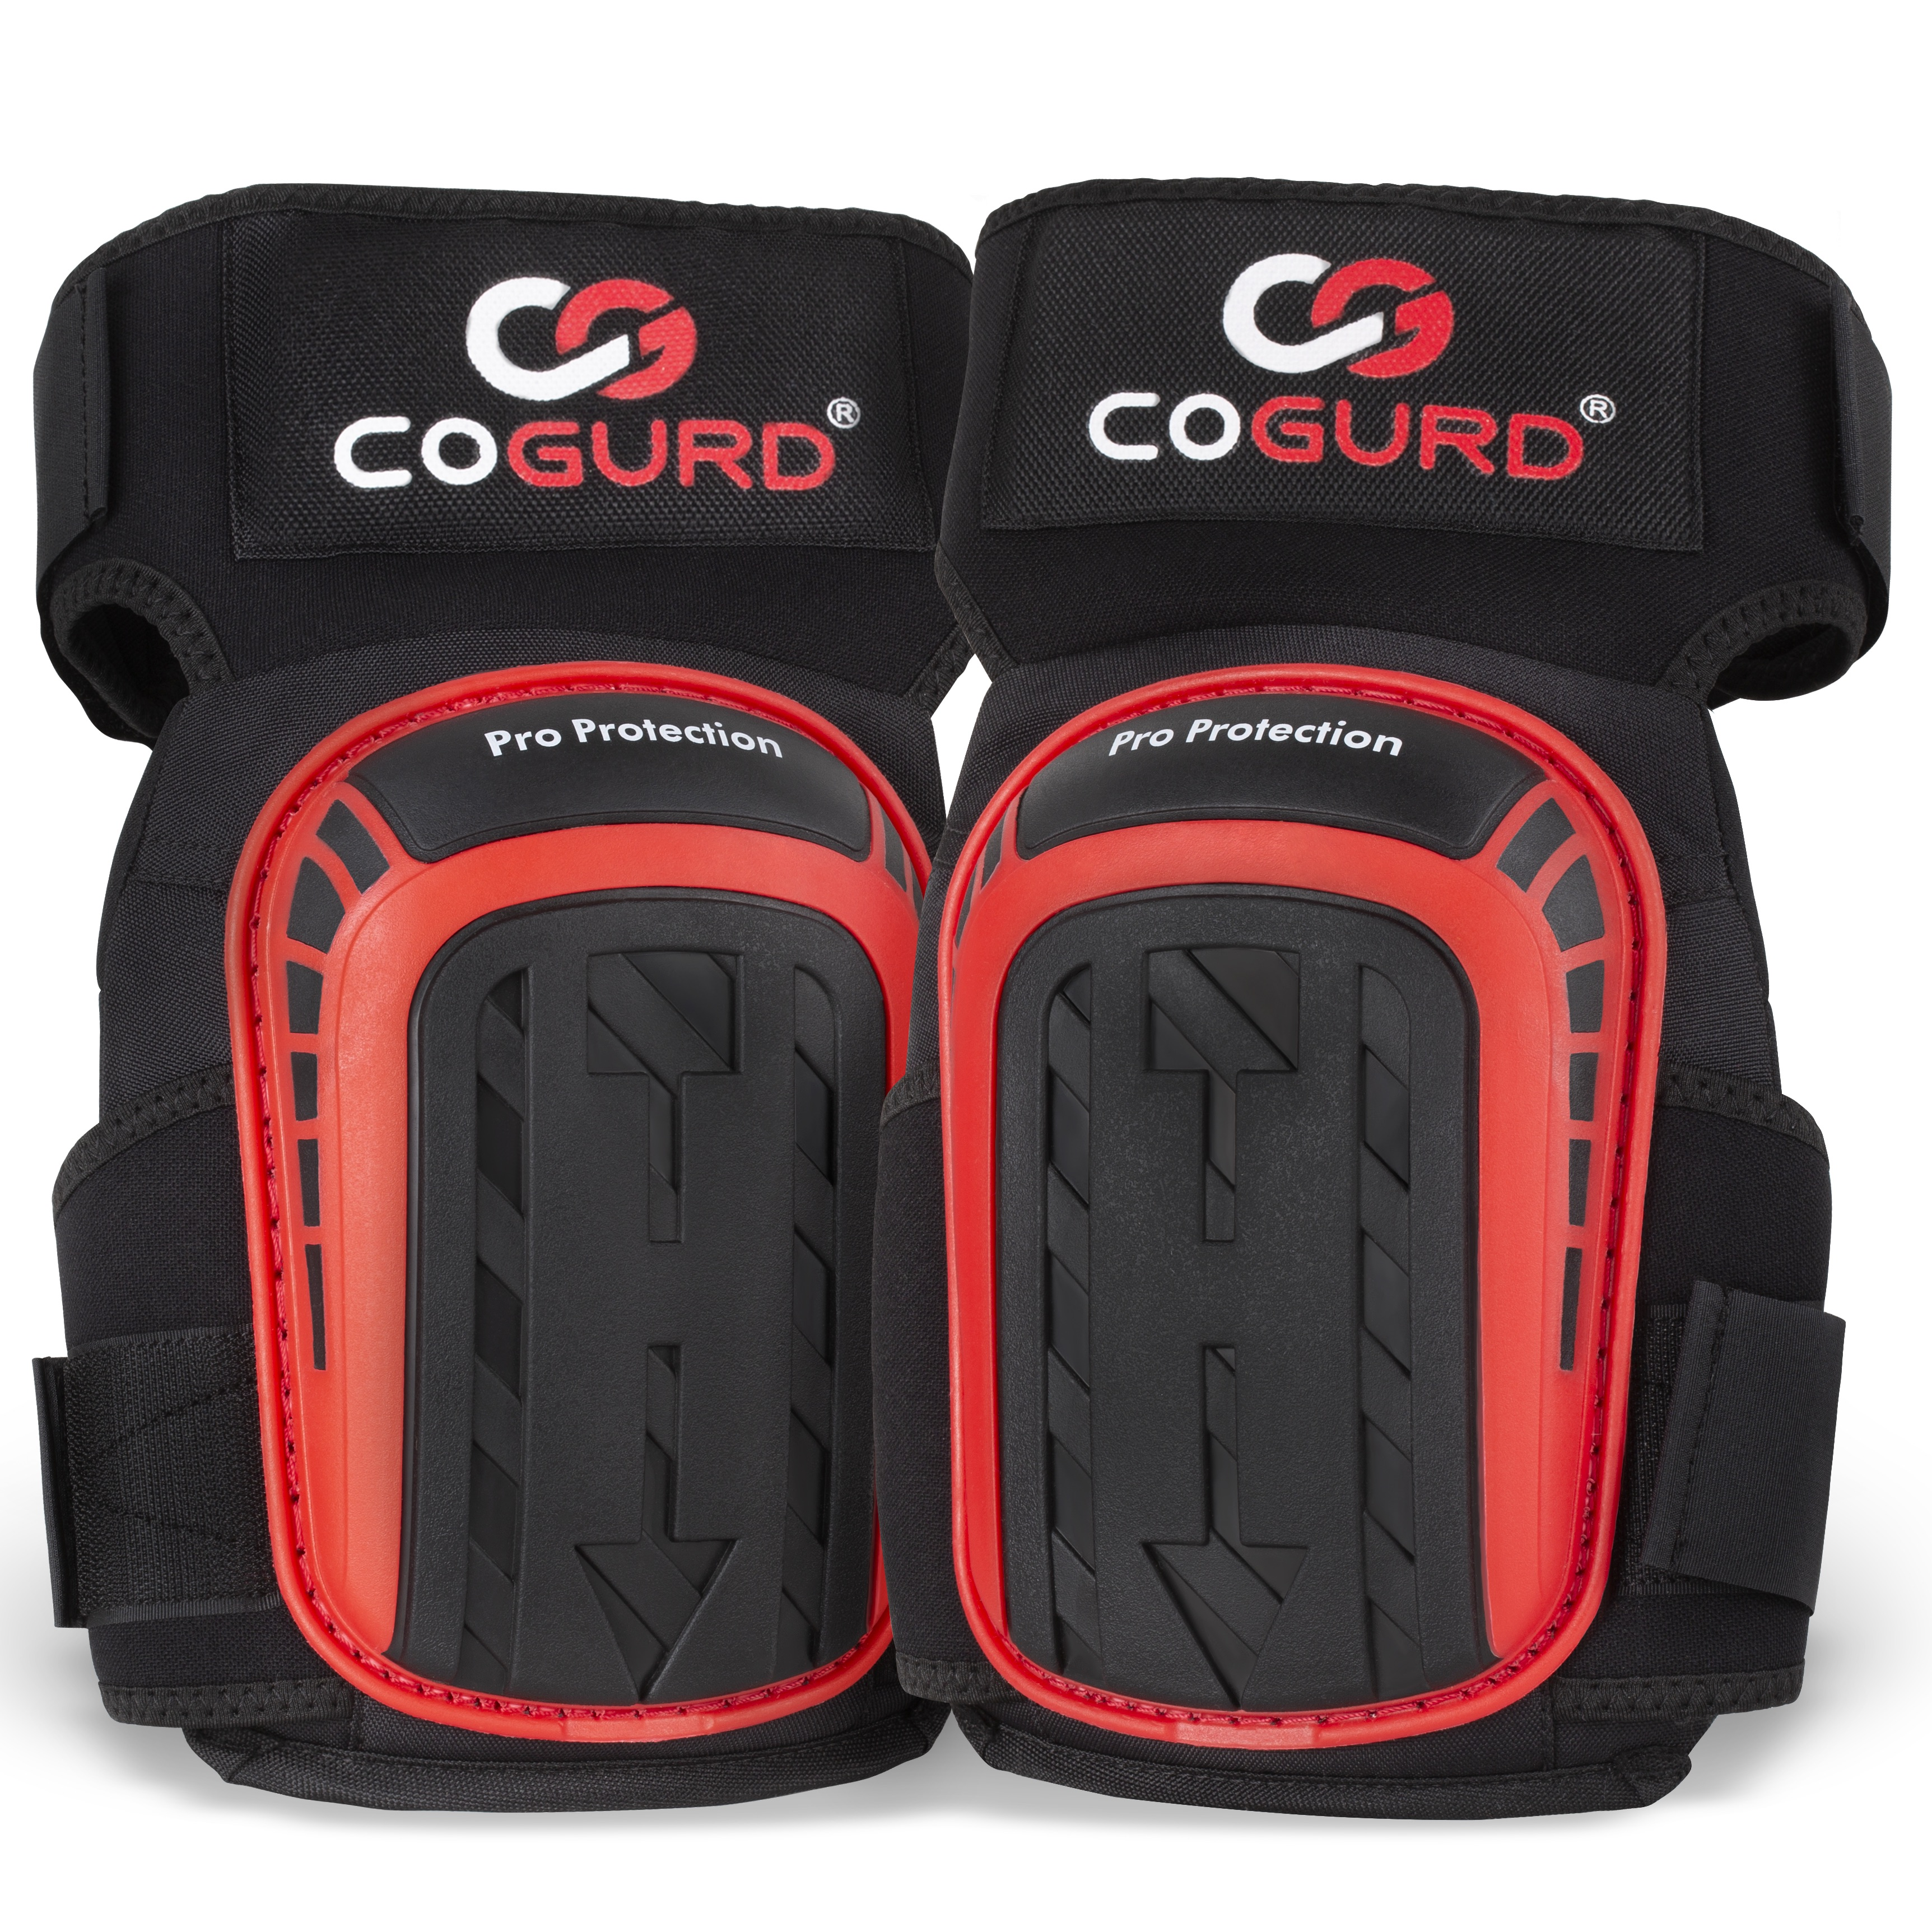 COGURD Professional Gel Knee Pads Provide a Comfortable Surface For Work